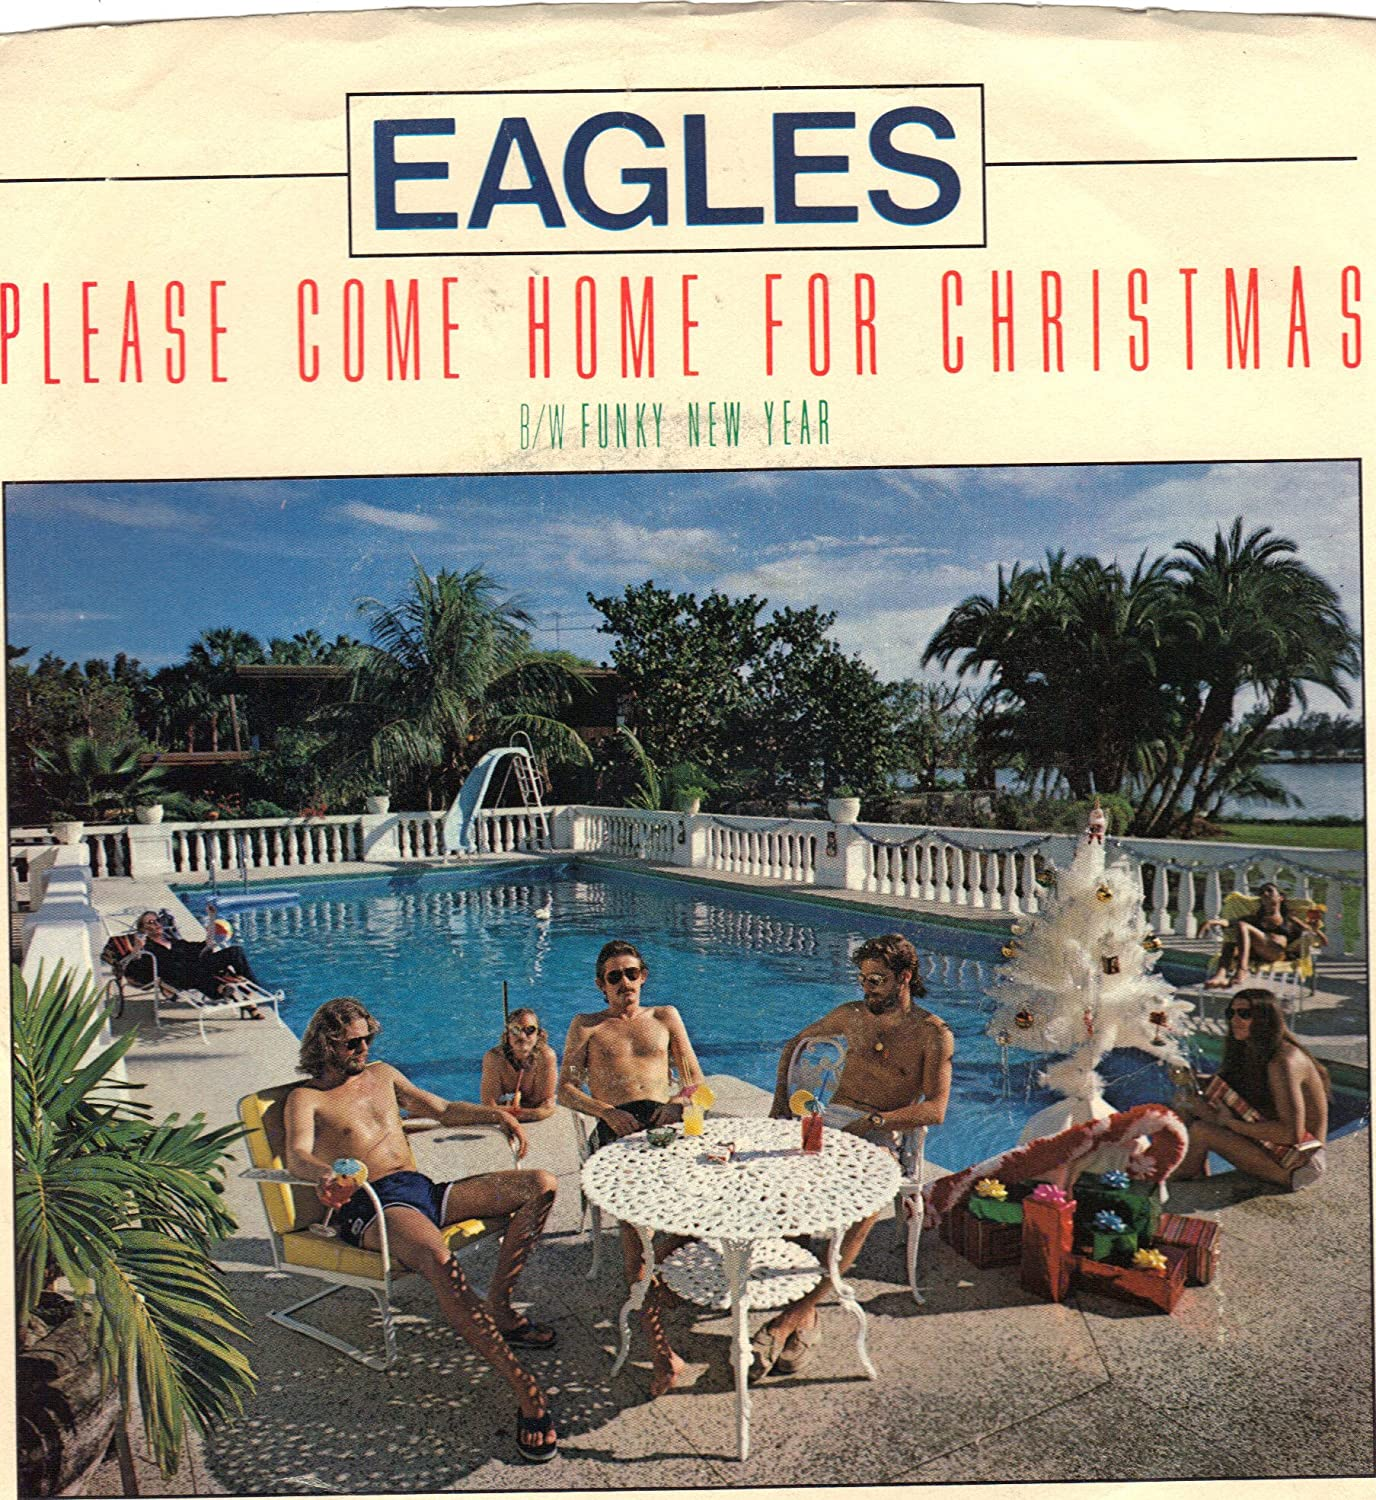 Come Home For Christmas.Eagles Eagles Please Come Home For Christmas 45rpm Record